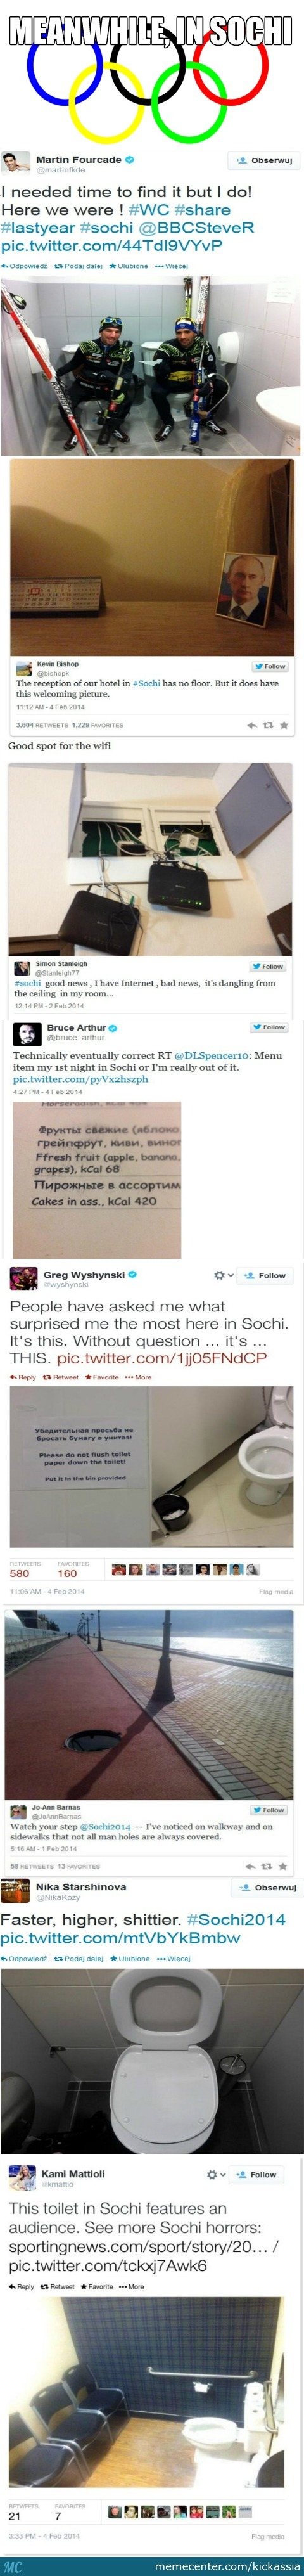 Meanwhile In The Olympic City Of Sochi By Kickassia Meme Center - Sochi problems tweets